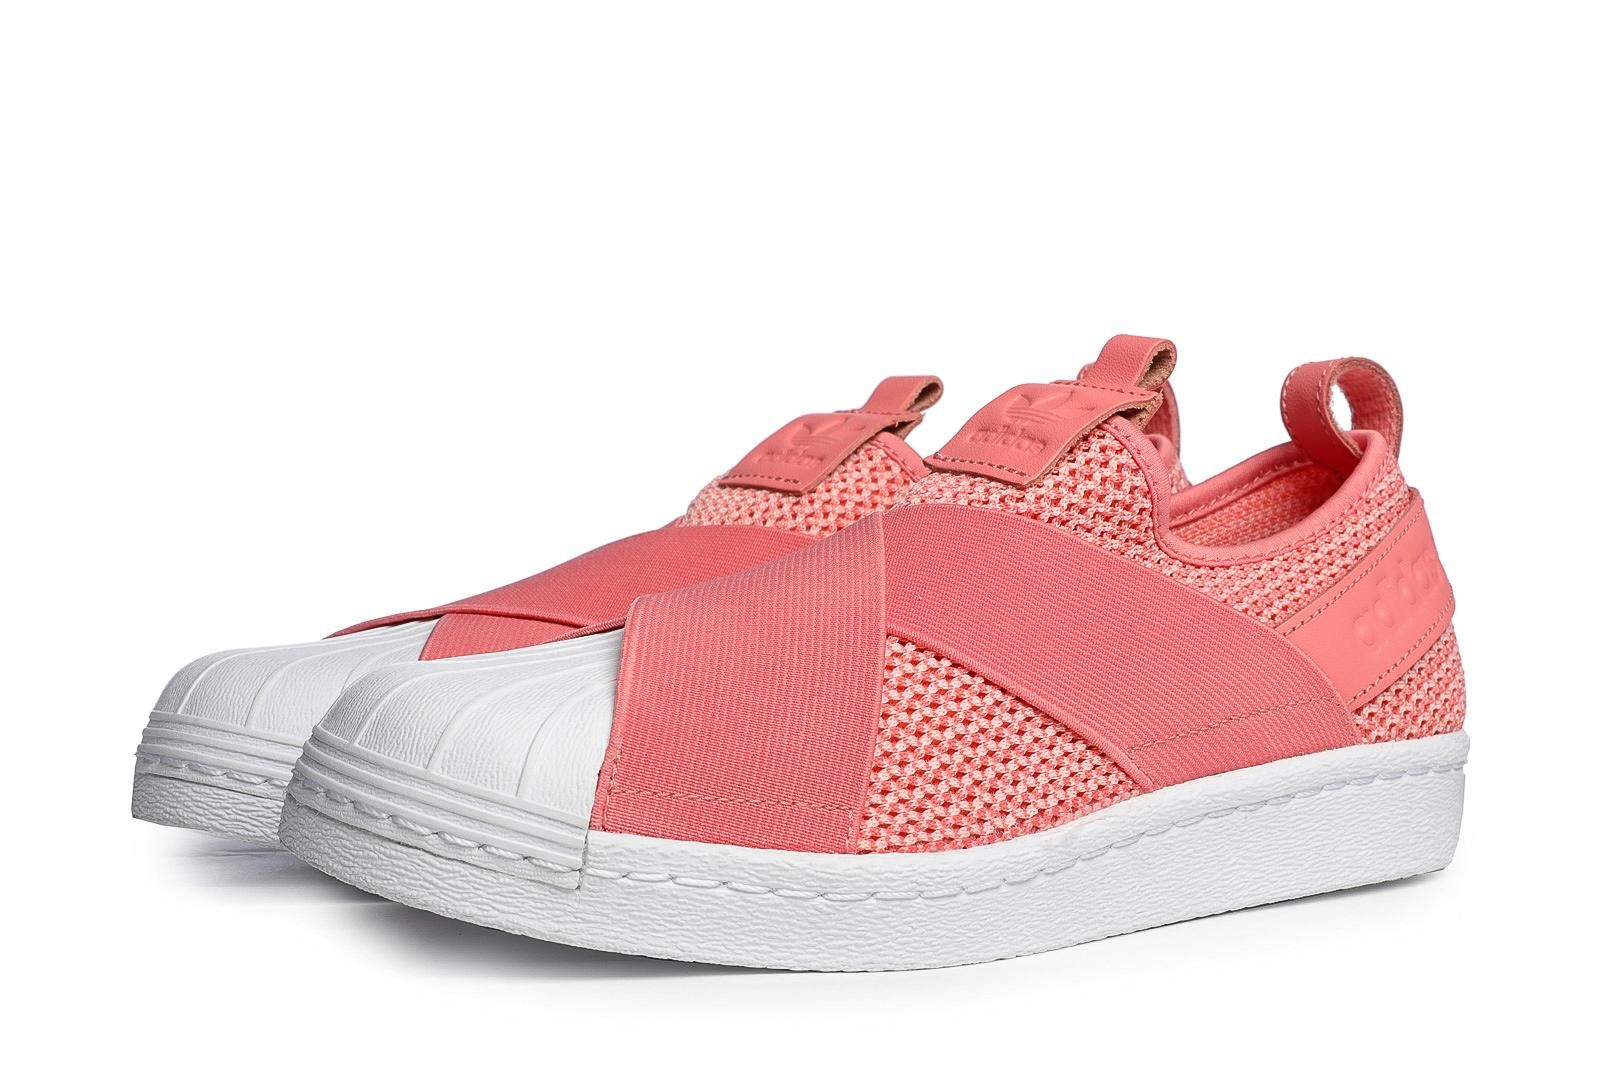 adidas Originals Tenisky Superstar Slip-on Tactile Rose